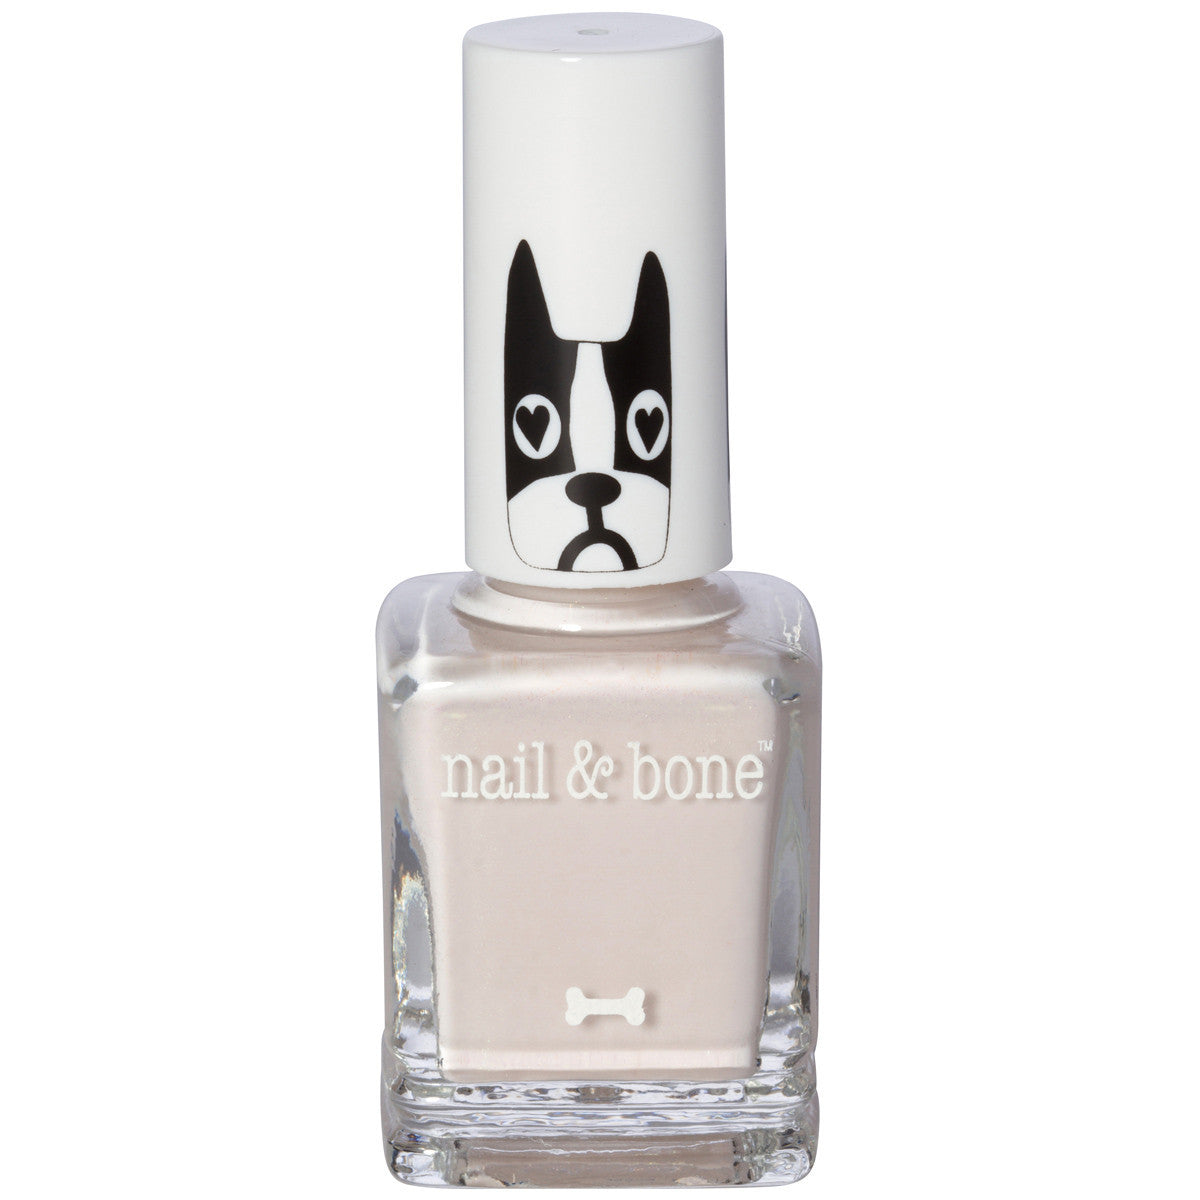 Ash nail polish 8-free cruelty free vegan made in the USA